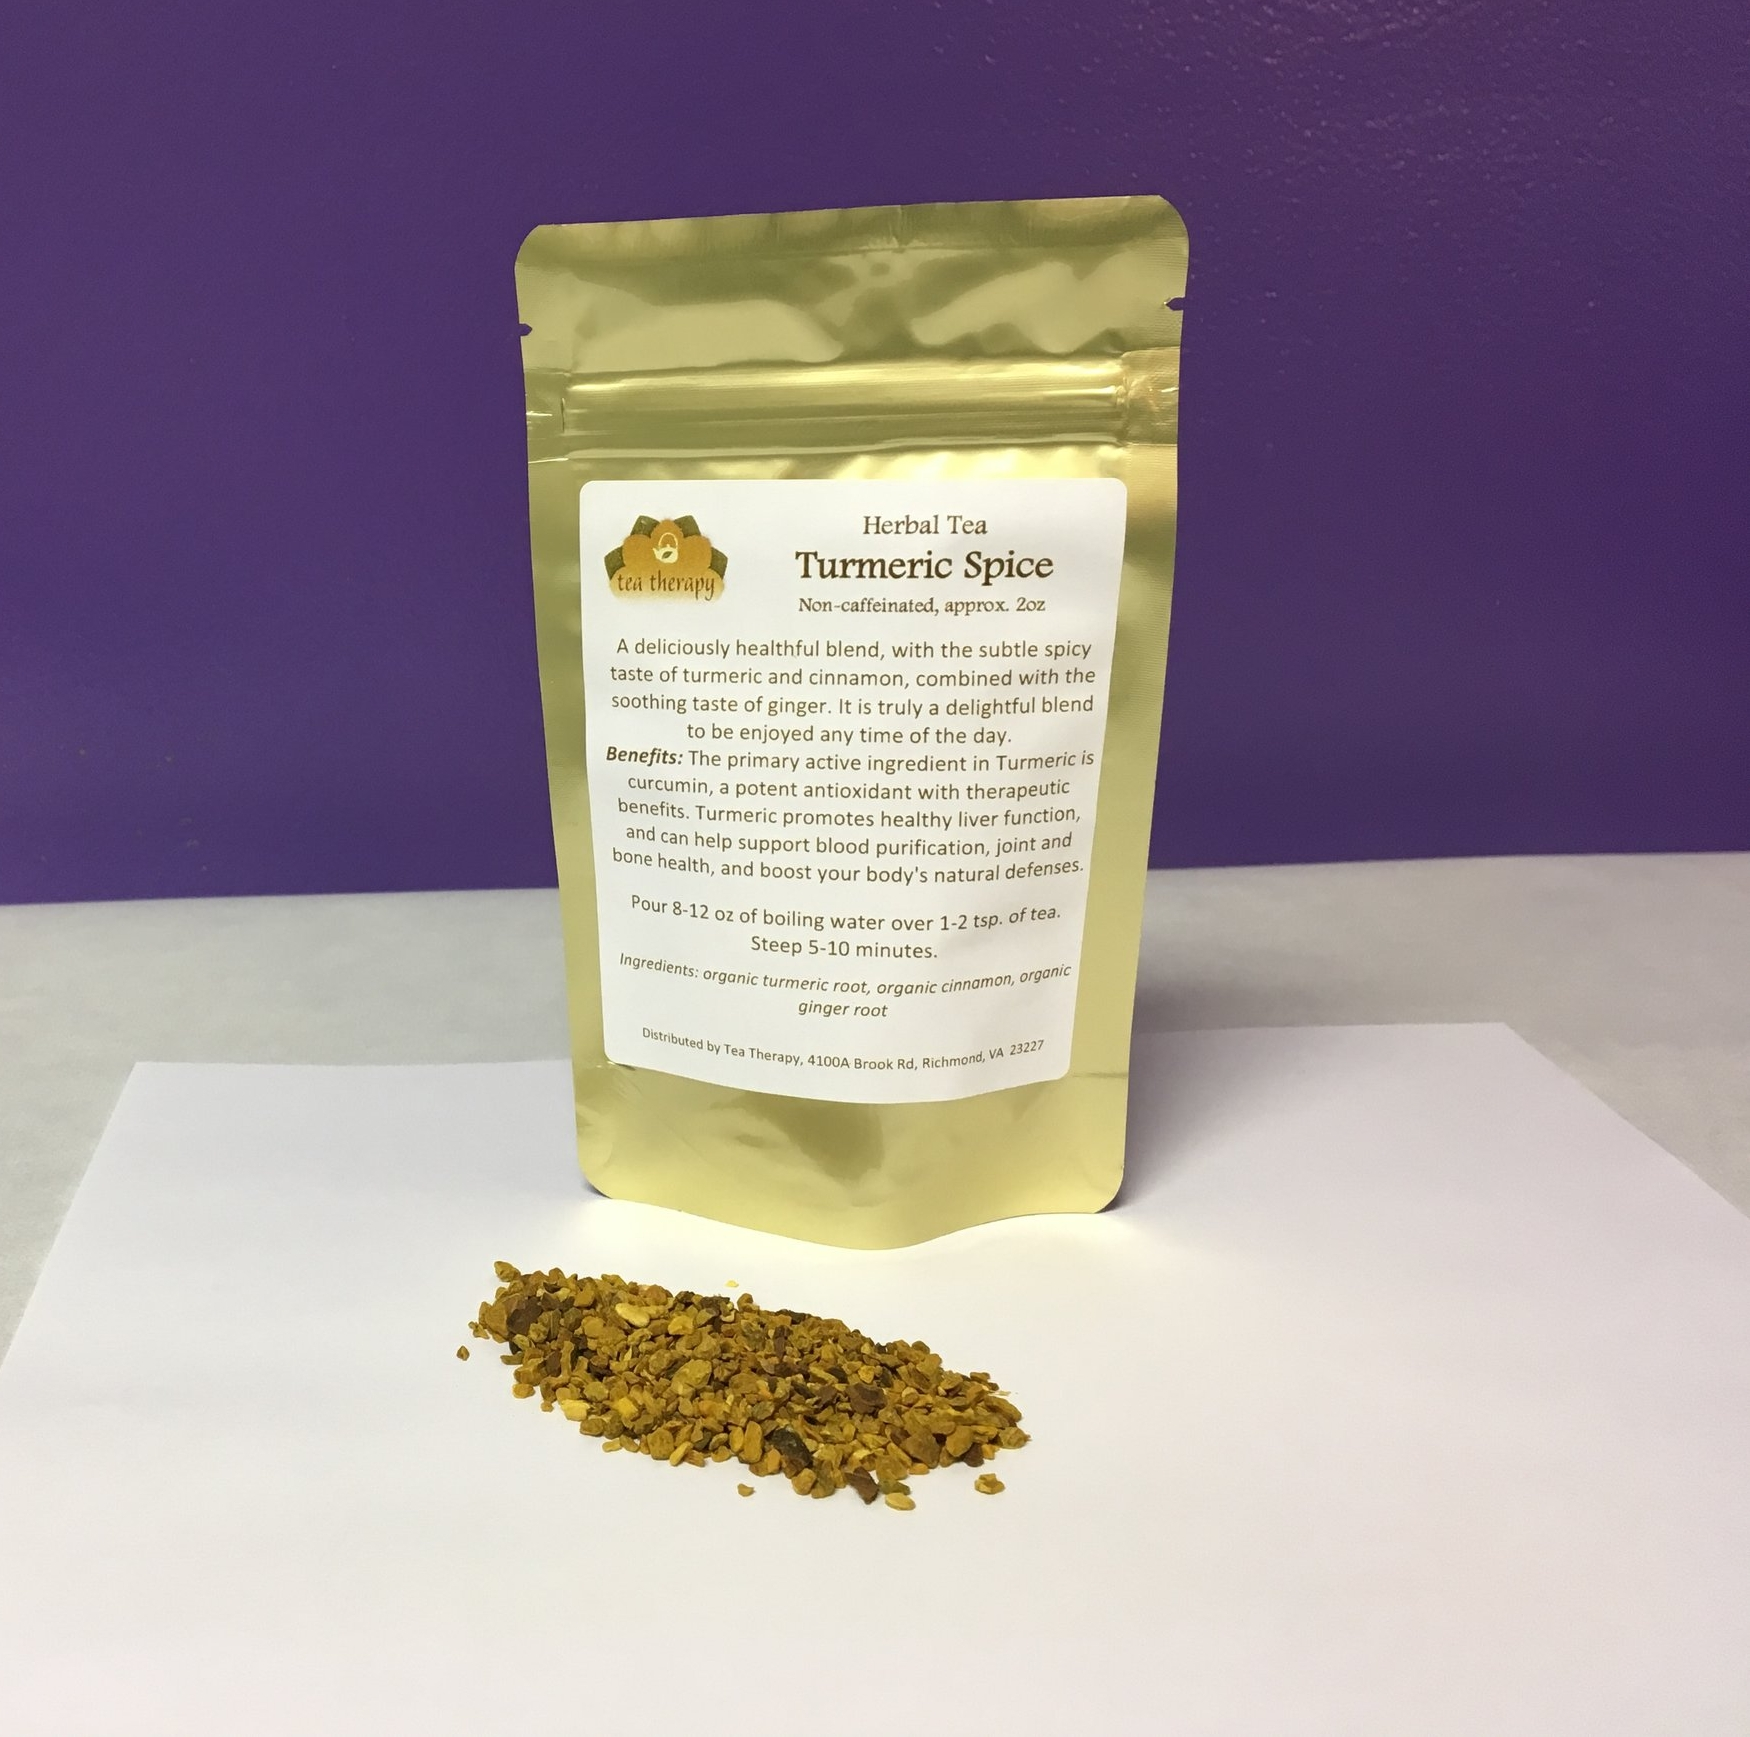 Turmeric Spice - Herbal tea – non-caffeinated - A deliciously healthful blend, with the subtle spicy taste of turmeric and cinnamon, combined with the soothing taste of ginger. It is truly a delightful blend to be enjoyed any time of the day. Benefits: The primary active ingredient in Turmeric is curcumin, a potent antioxidant with therapeutic benefits. Turmeric promotes healthy liver function, and can help support blood purification, joint and bone health, and boost your body's natural defenses. Ingredients: organic turmeric root, organic cinnamon, organic ginger root